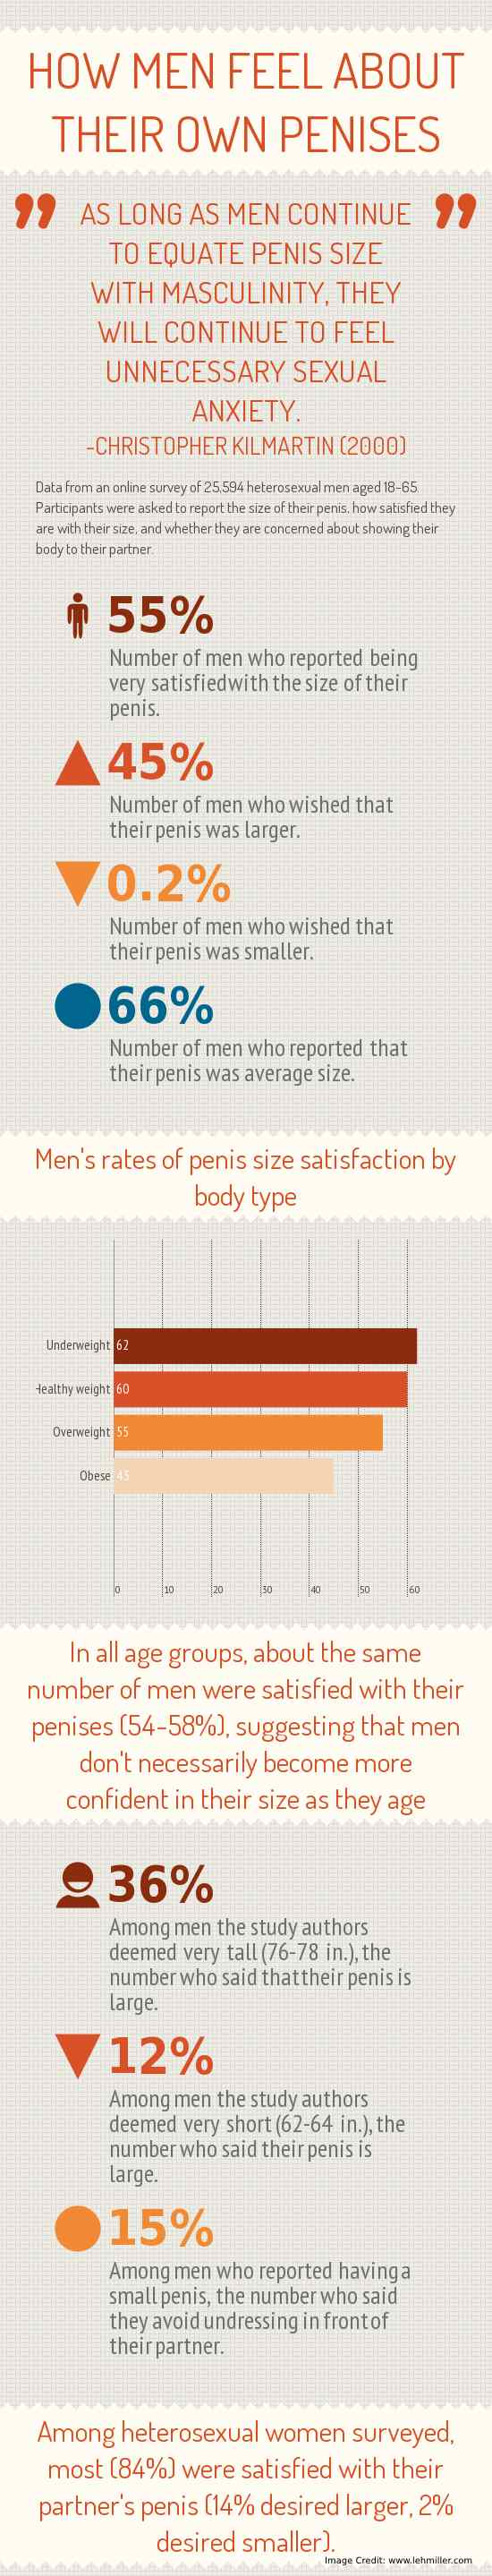 Why Do Men Want To Make Their Penis Bigger